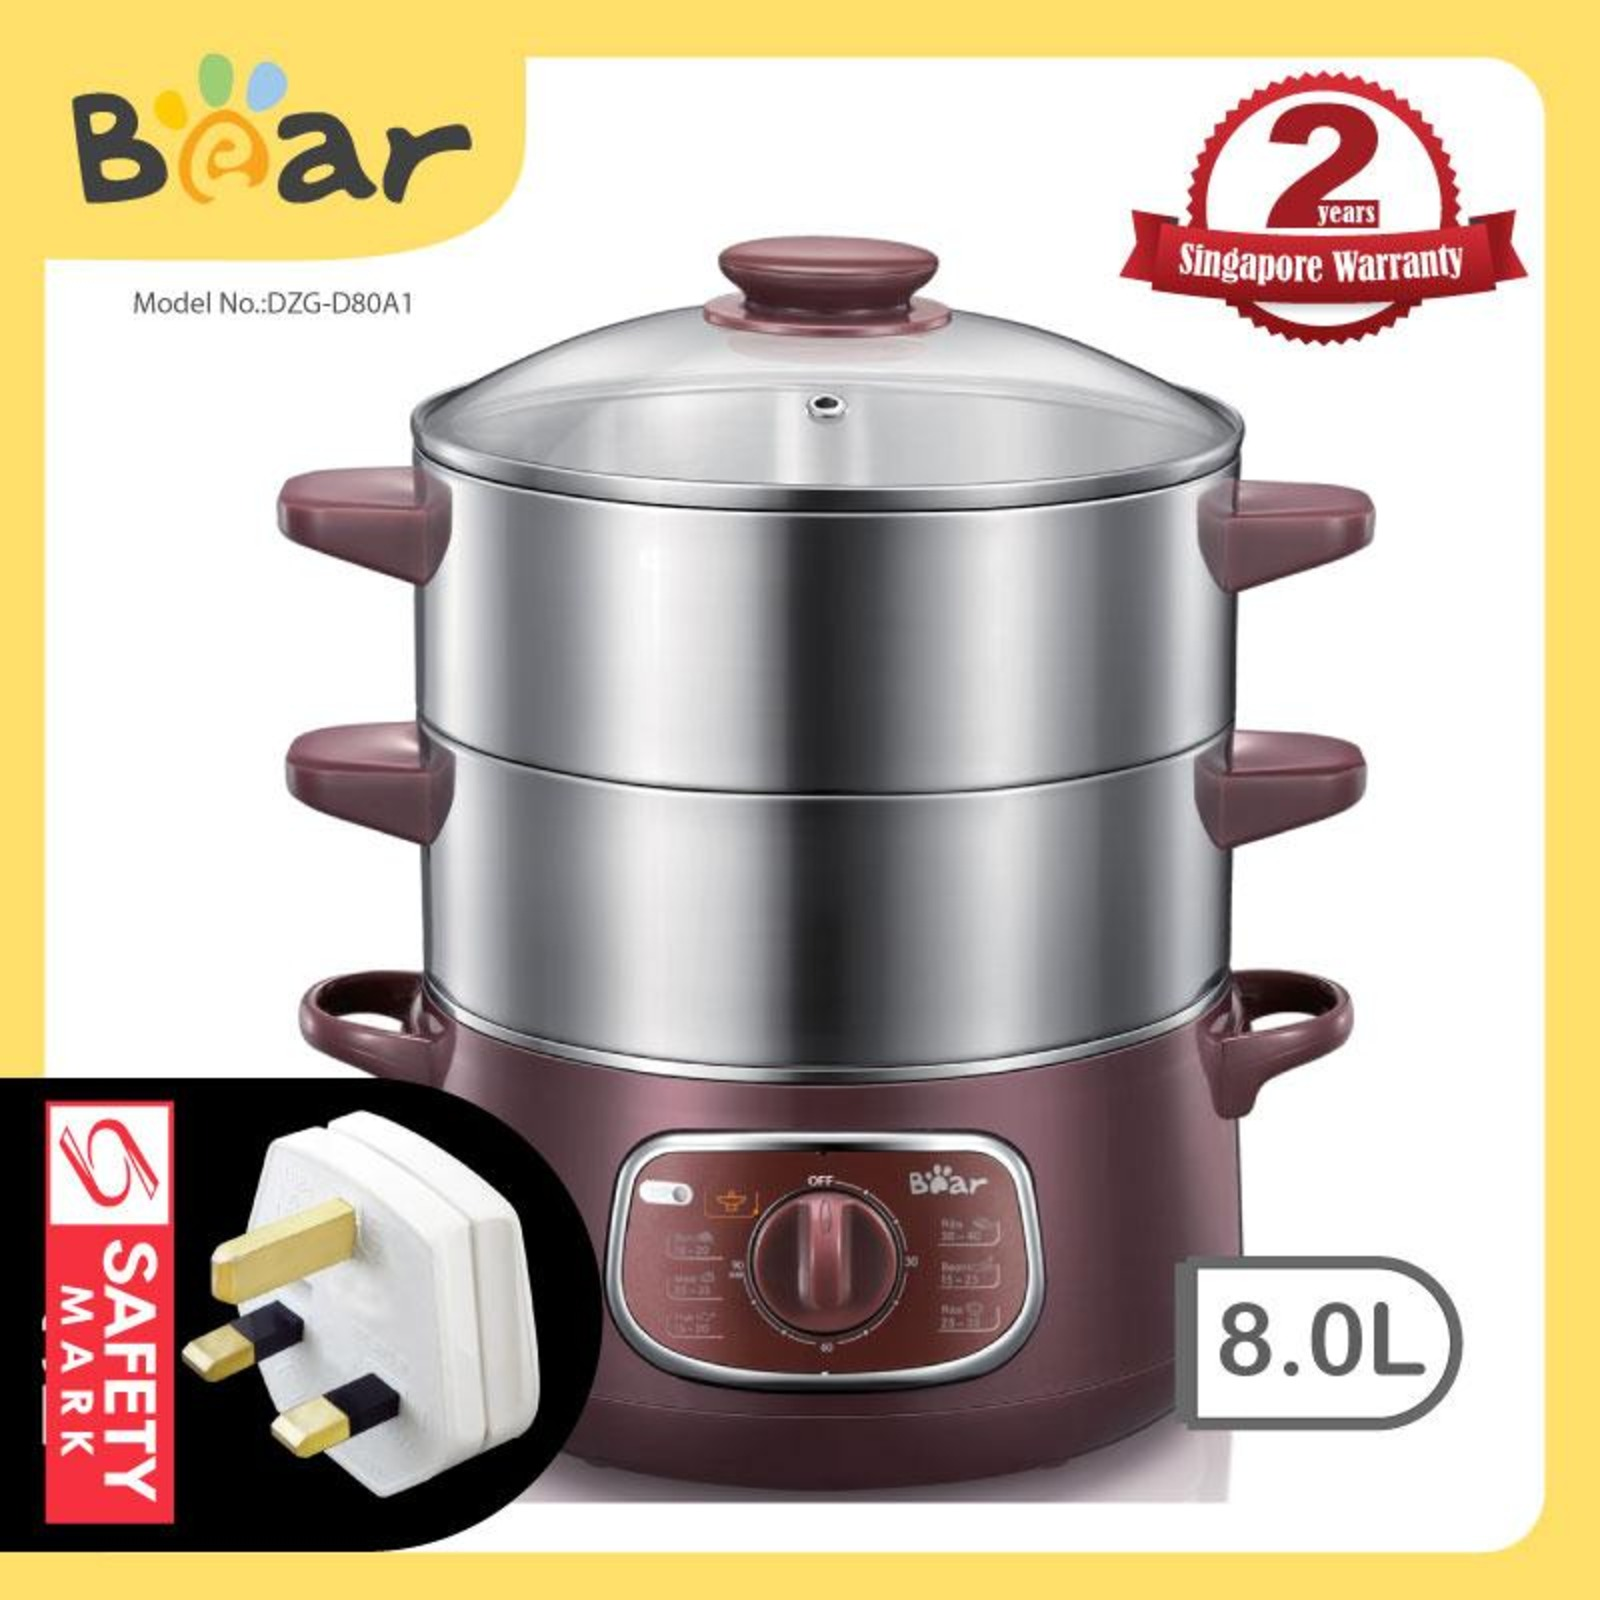 Bear Stainless Steel Food Steamer DZG-D80A1